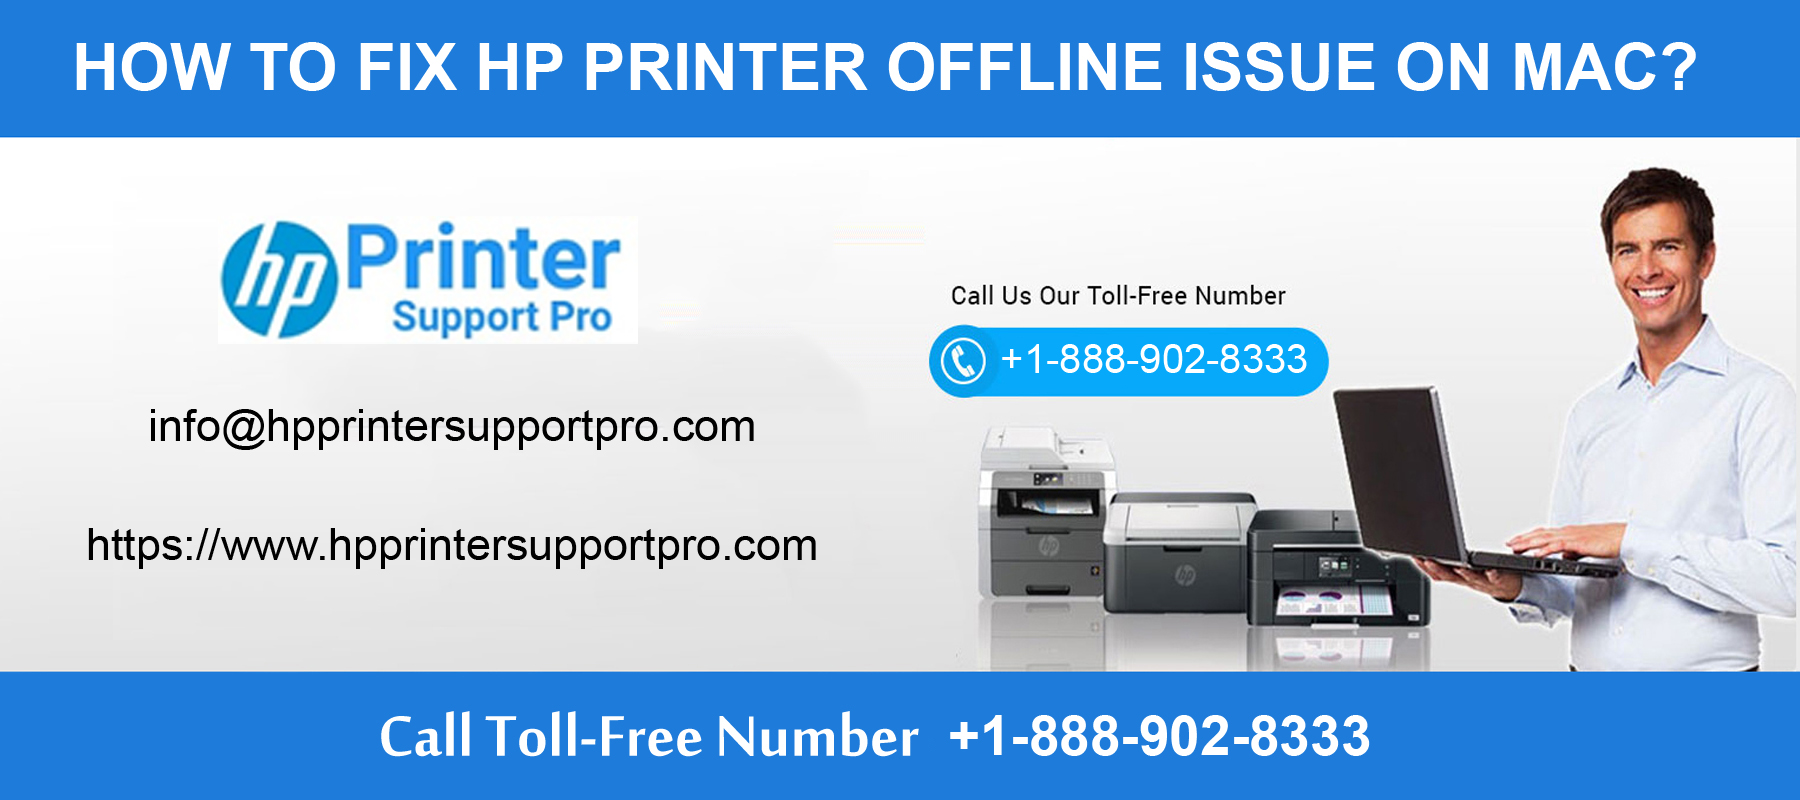 1-888-902-8333-fix HP Printer Offline Issue on Mac